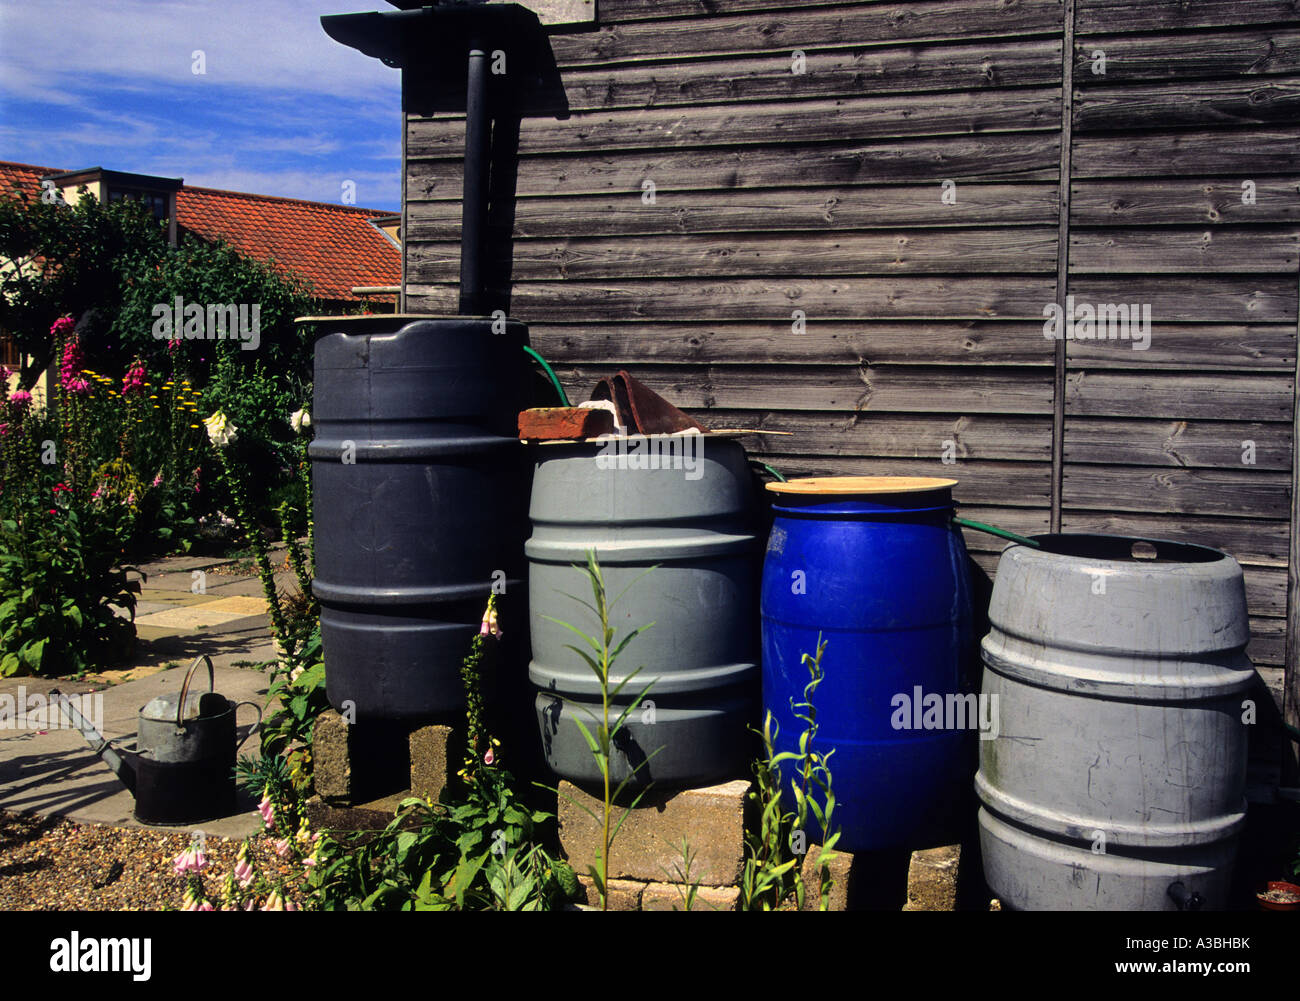 Multiple Water Butts Joined Together To Collect Rainwater From A Garden  Shed In The Village Of